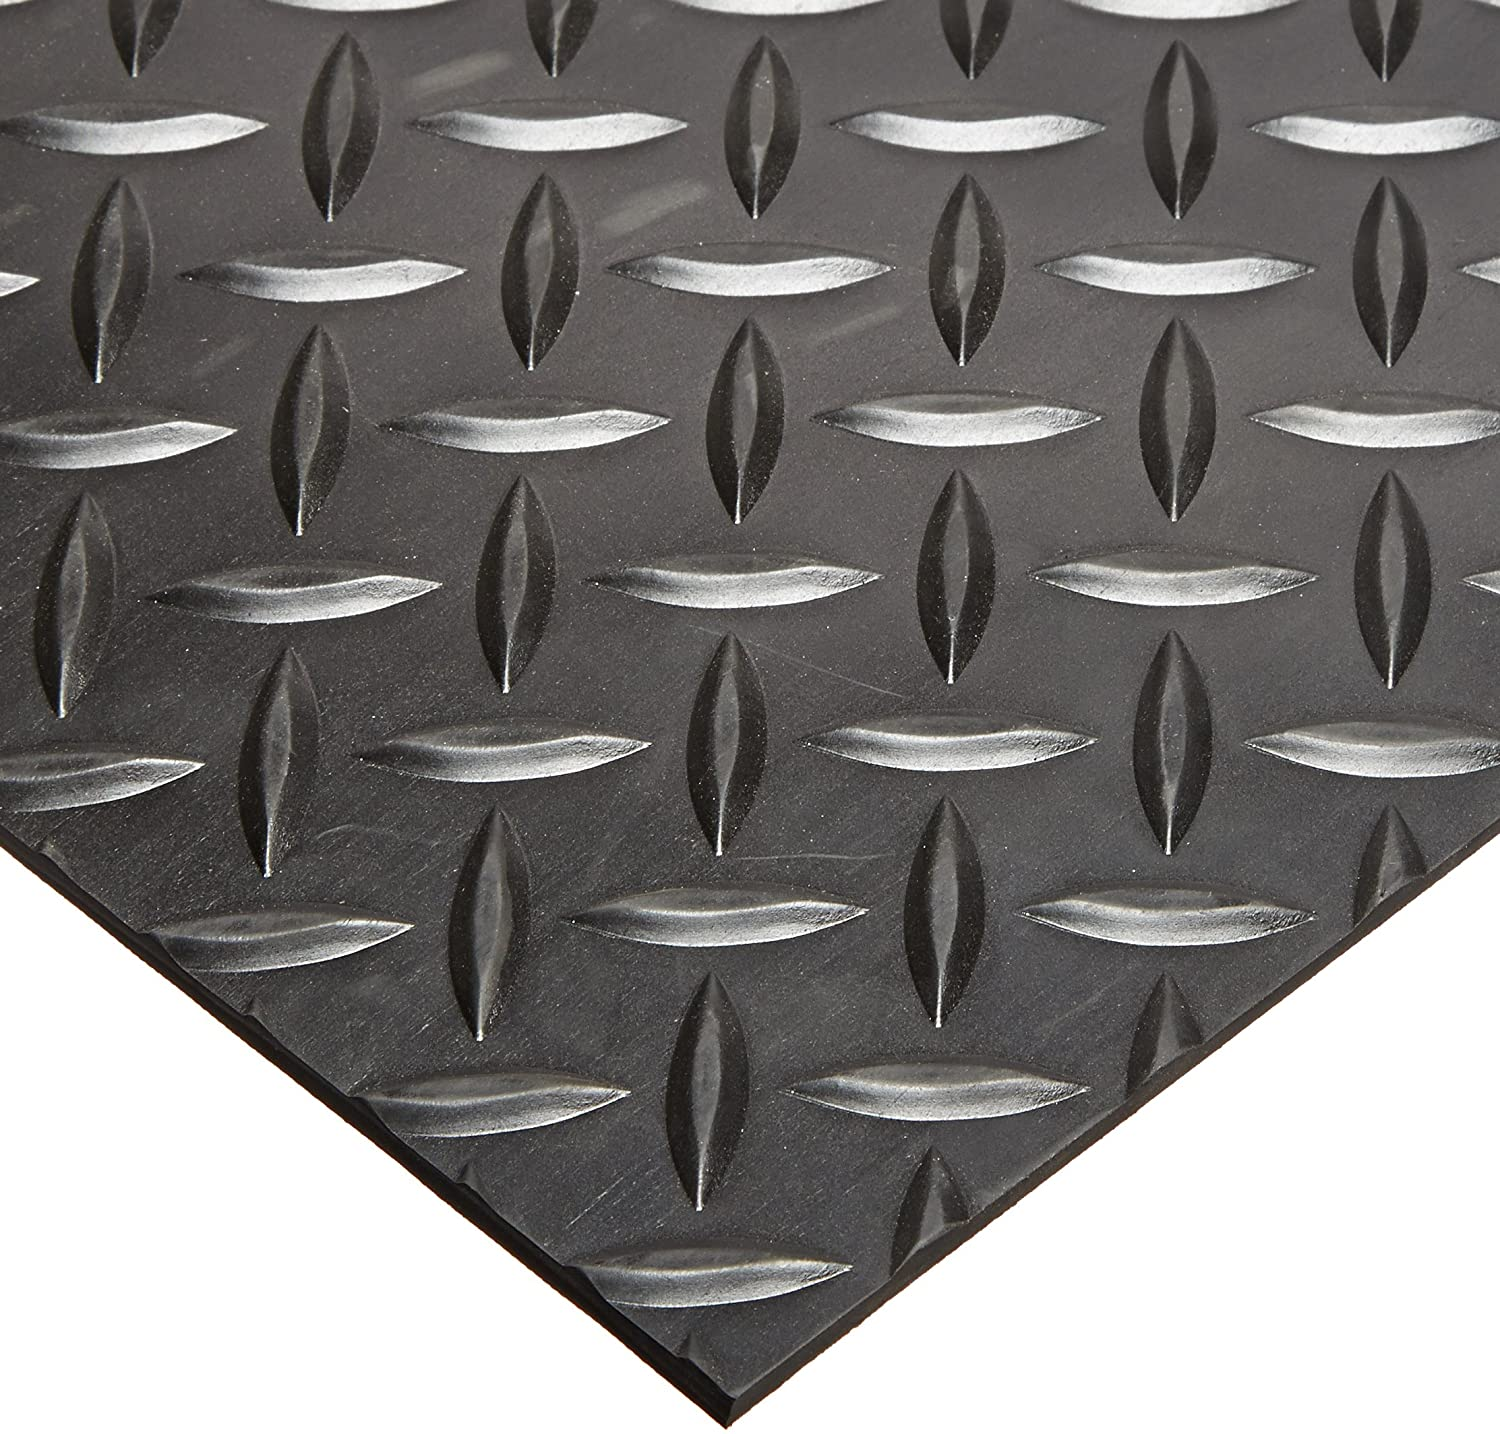 Rhino Mats SBD-424-3648 Diamond Plate Pattern Rubber Insulating Switchboard Mat, 3' Width x 4' Length x 1/4 Thickness, 30000 VAC, ASTM Type II Class 2, Black by Rhino Mats B00EQD6N2G